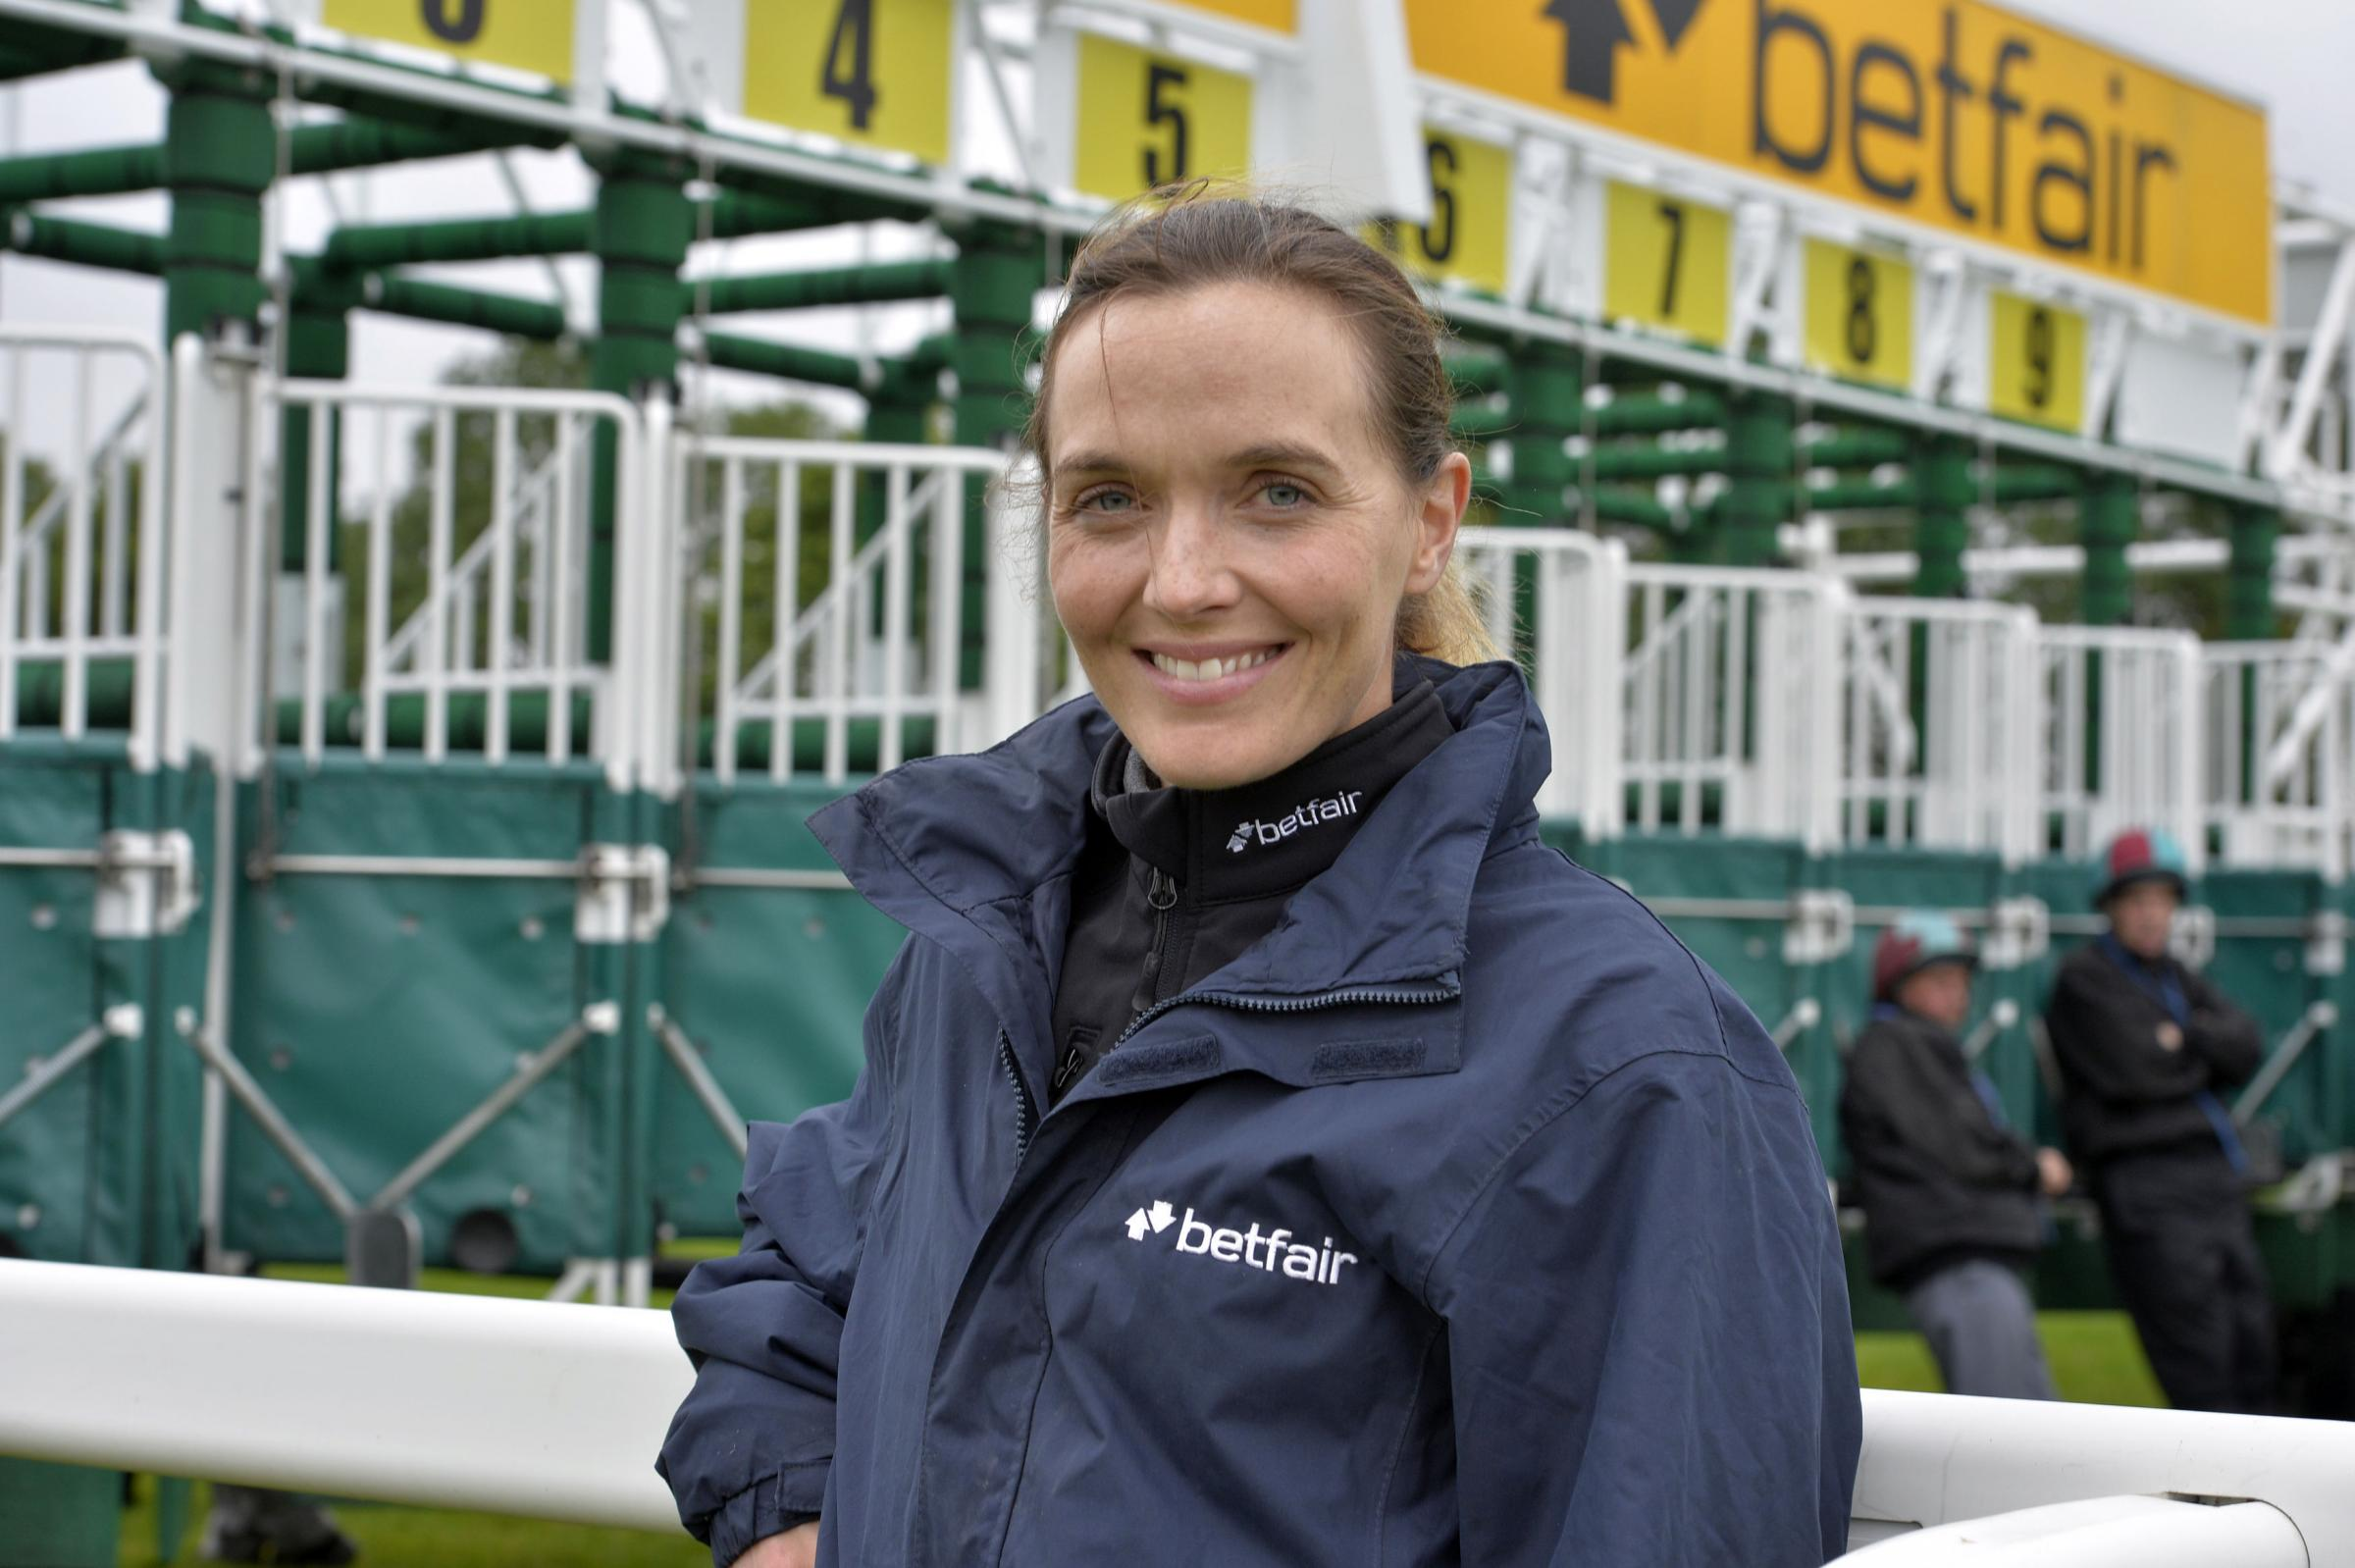 Victoria Pendleton before her first race during the Bank Holiday Fun Day at Ripon Racecourse, Ripon. Picture date: Monday August 31, 2015. (Pic: Owen Humphreys/PA Wire)